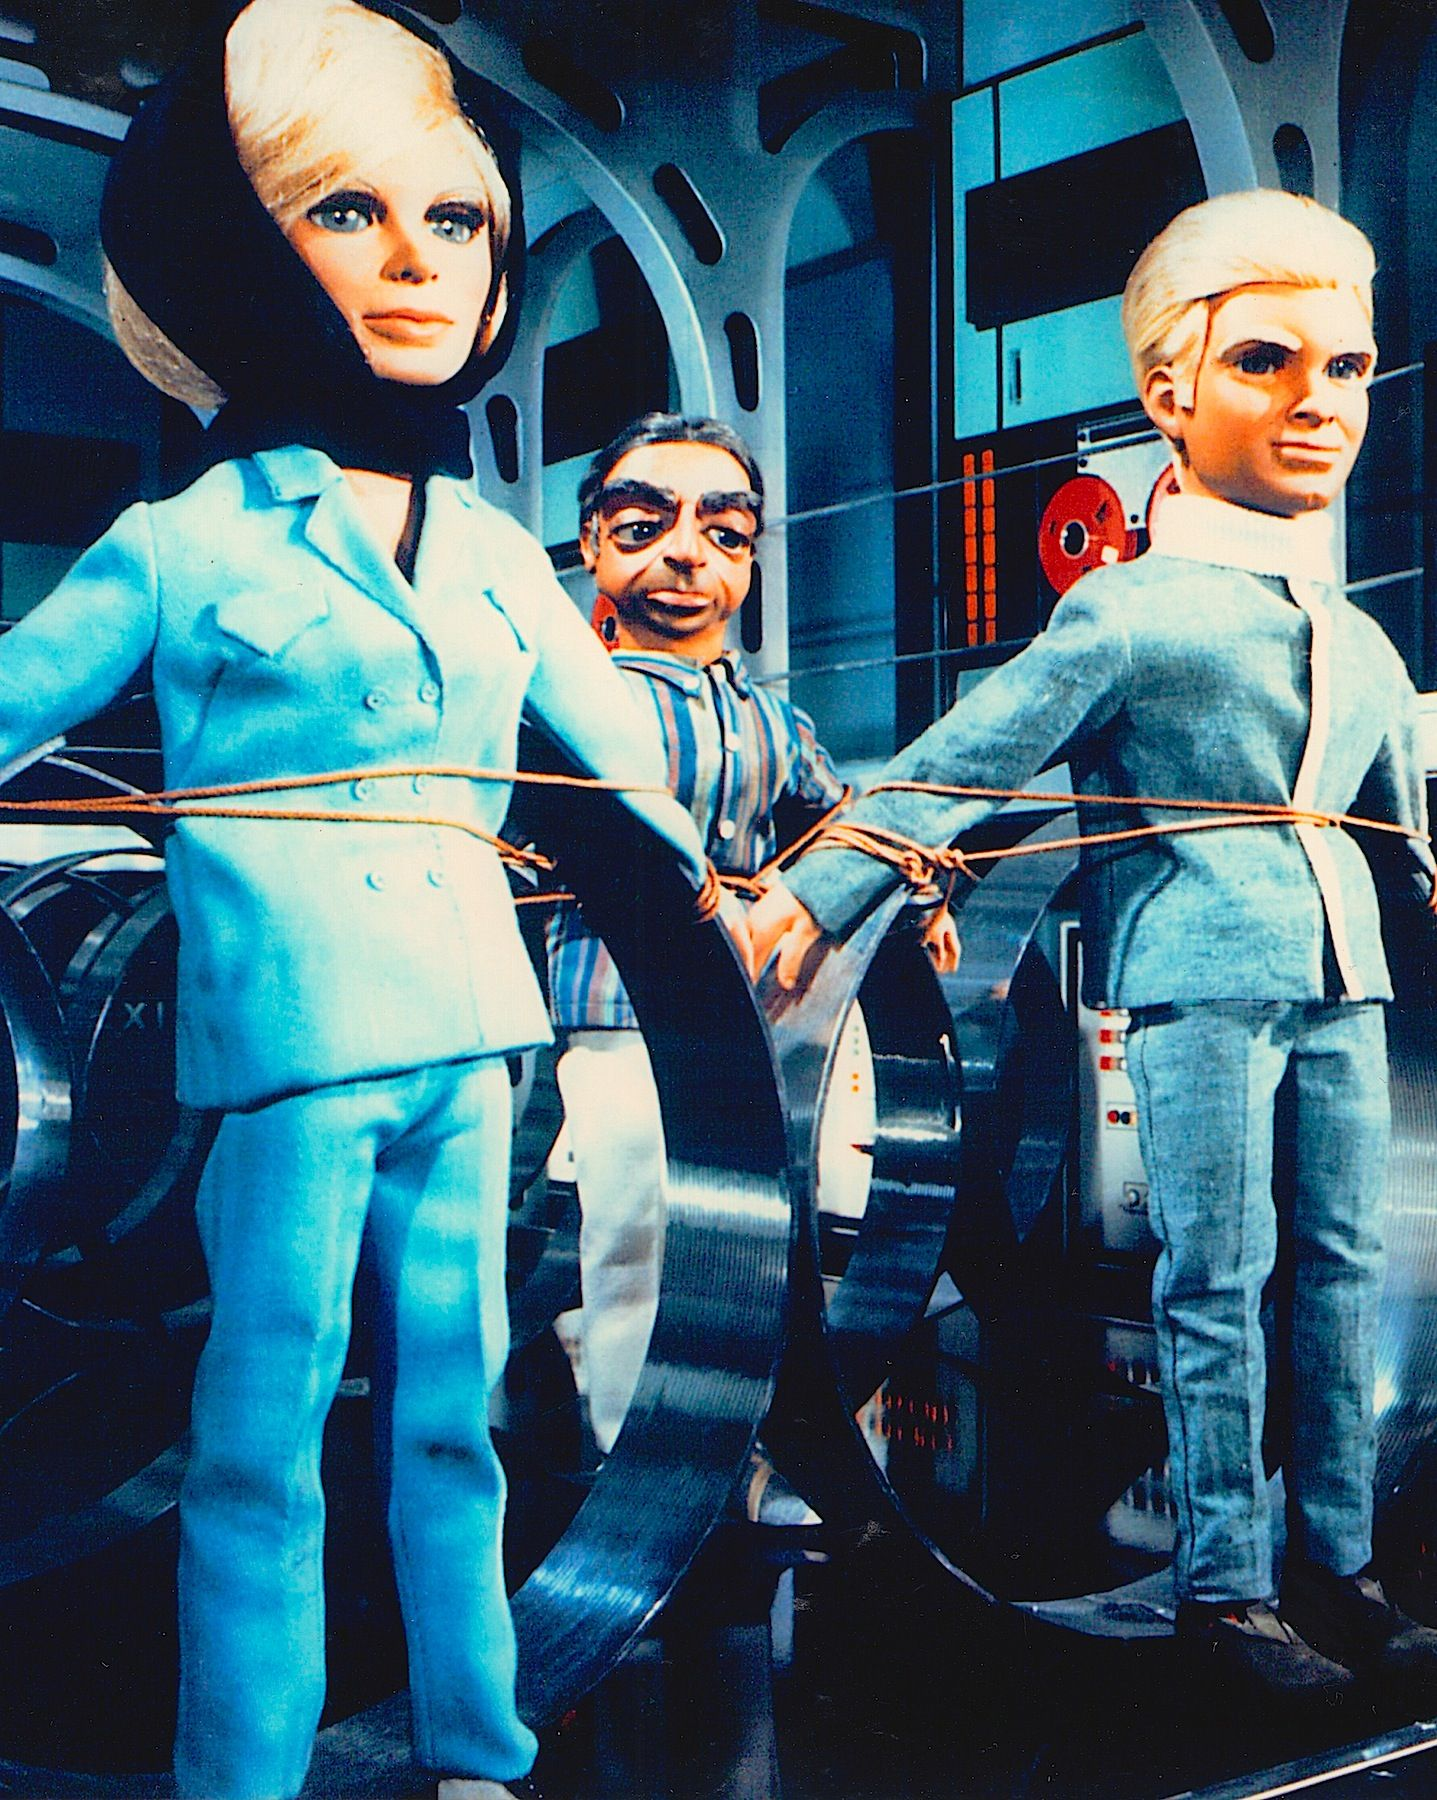 Lady Penelope is all tied up THE THUNDERBIRDS photo detail the